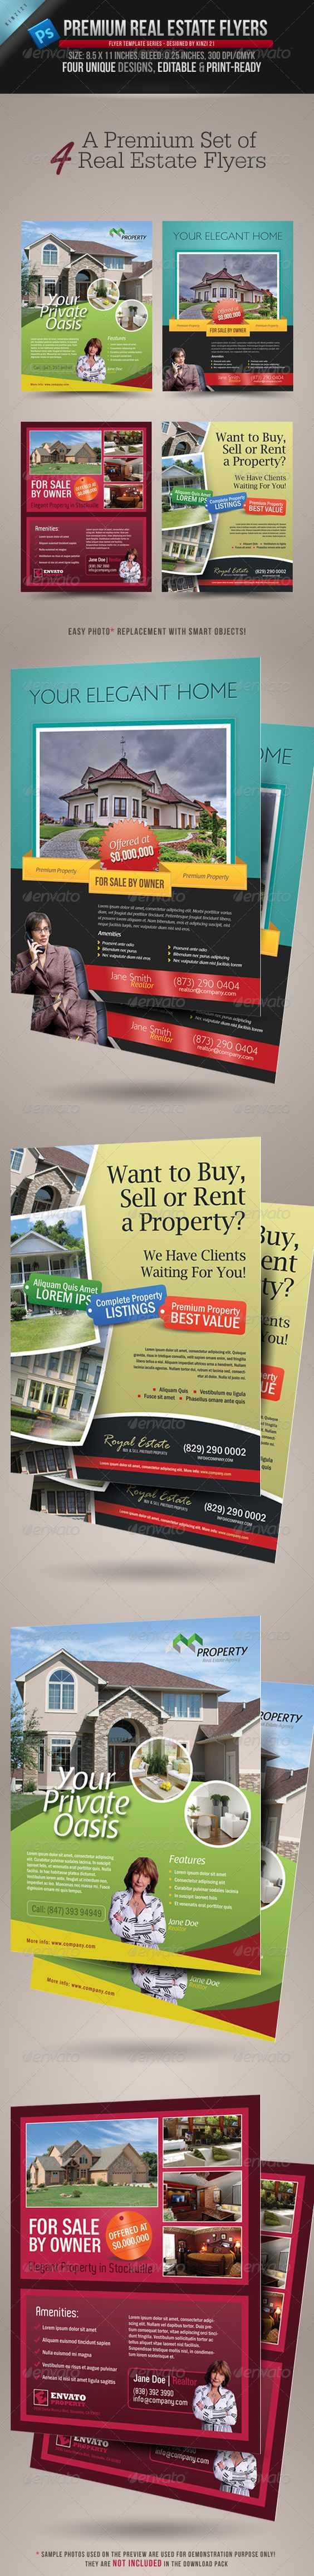 free real estate flyers templates in word best and professional